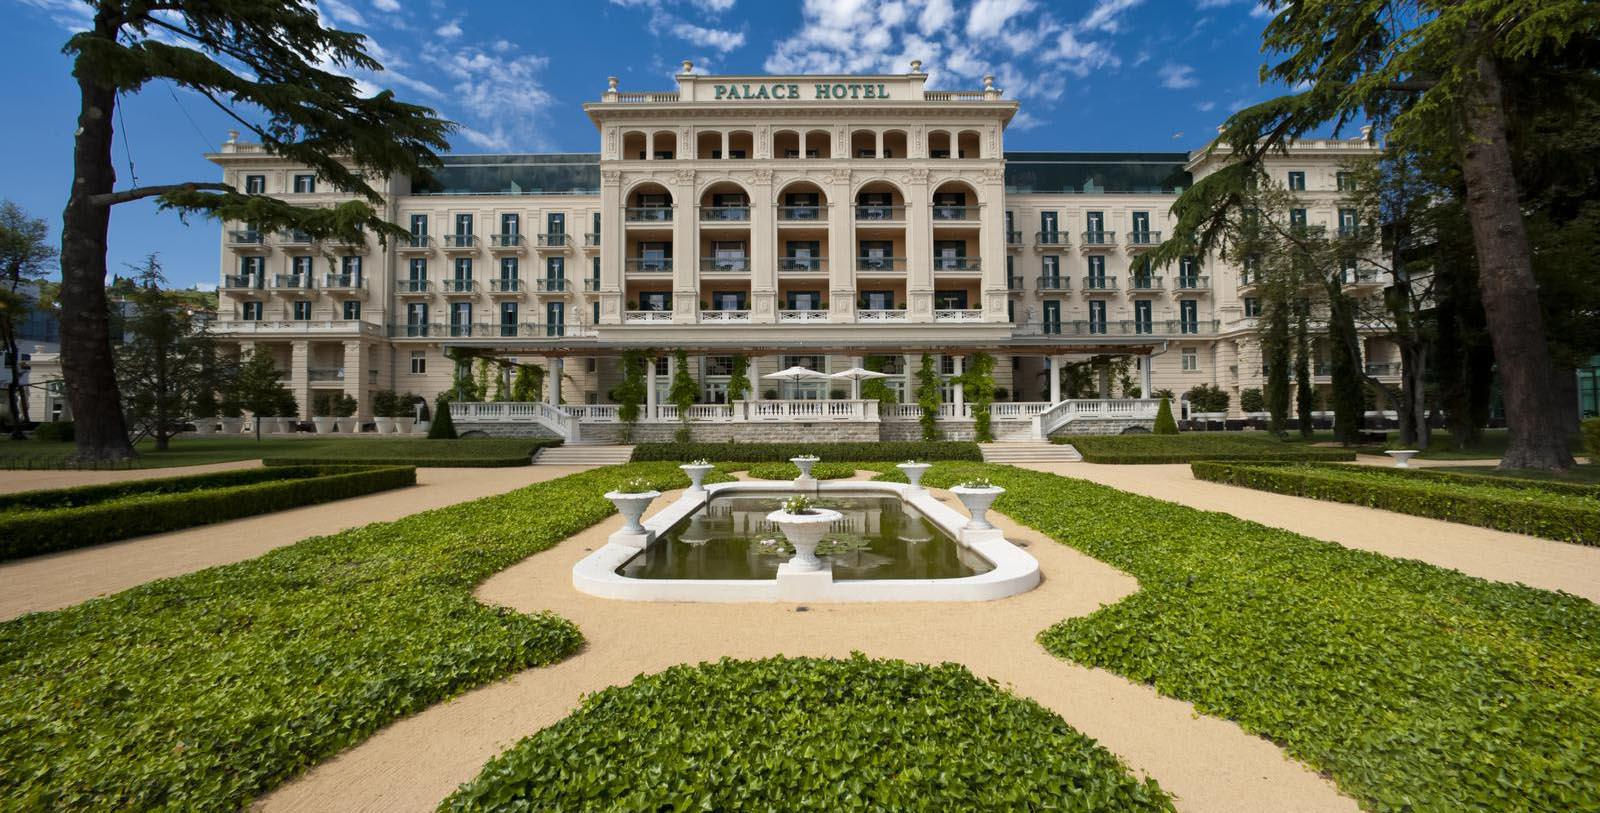 Image of Garden Kempinski Palace Portorož, 1908, Member of Historic Hotels Worldwide, in Portoroz, Slovenia, Spa